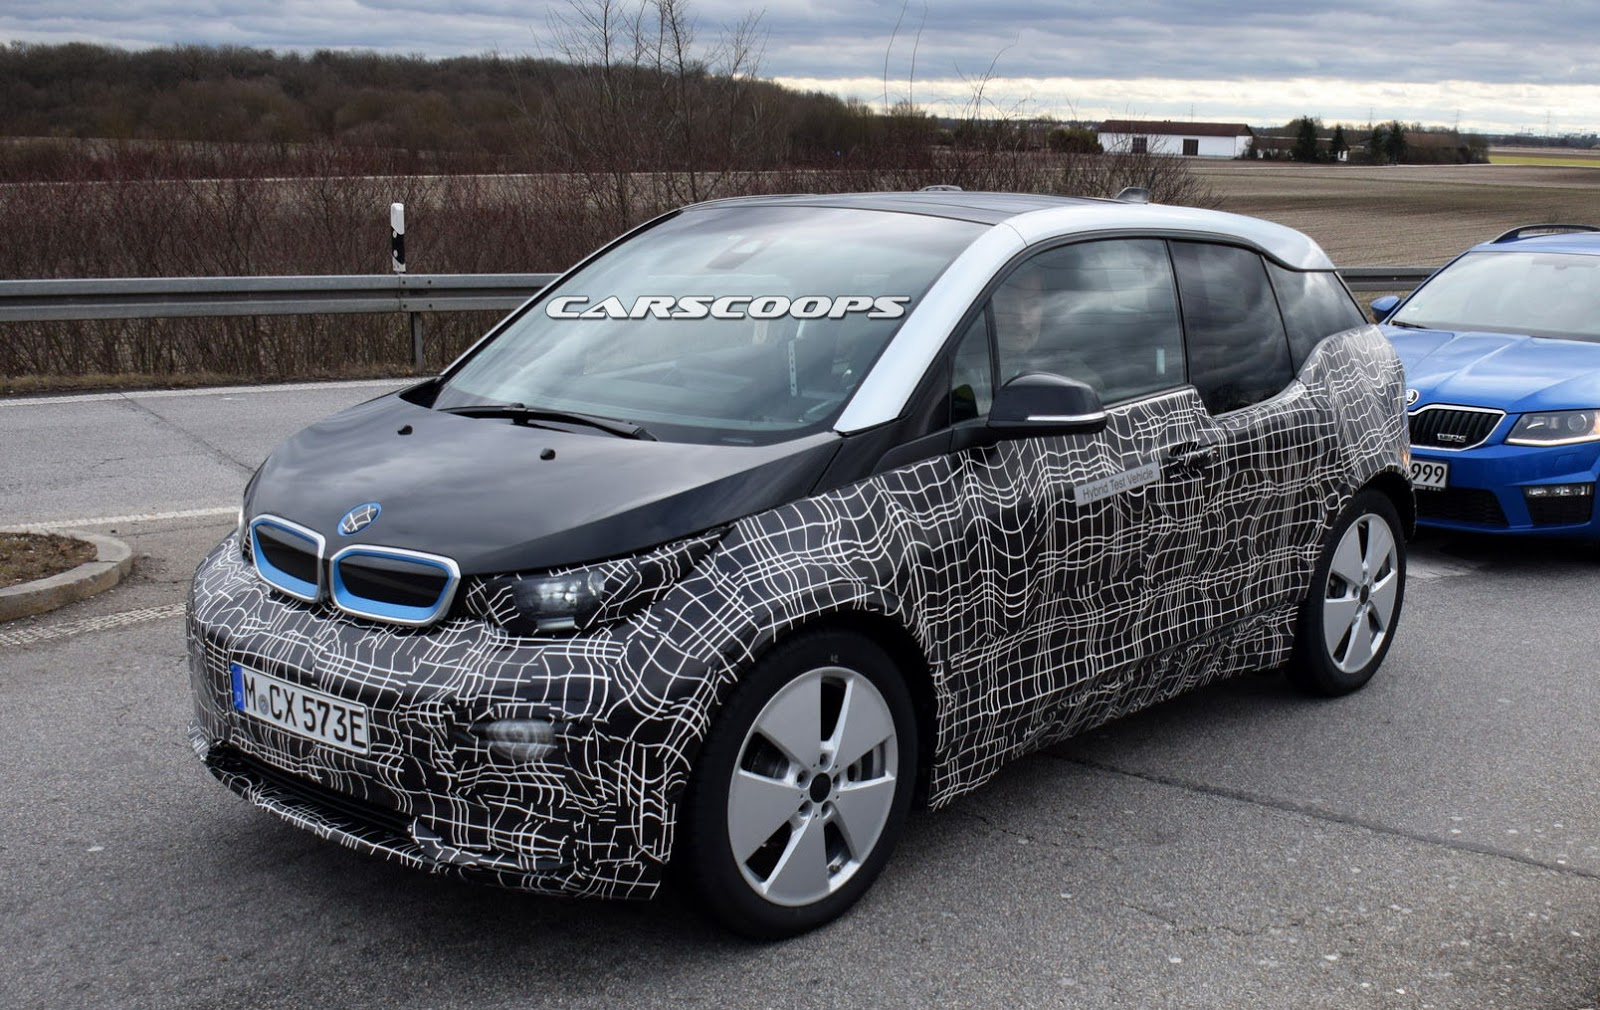 hotter bmw i3s iperformance to gain 20hp and updated chassis carscoops. Black Bedroom Furniture Sets. Home Design Ideas